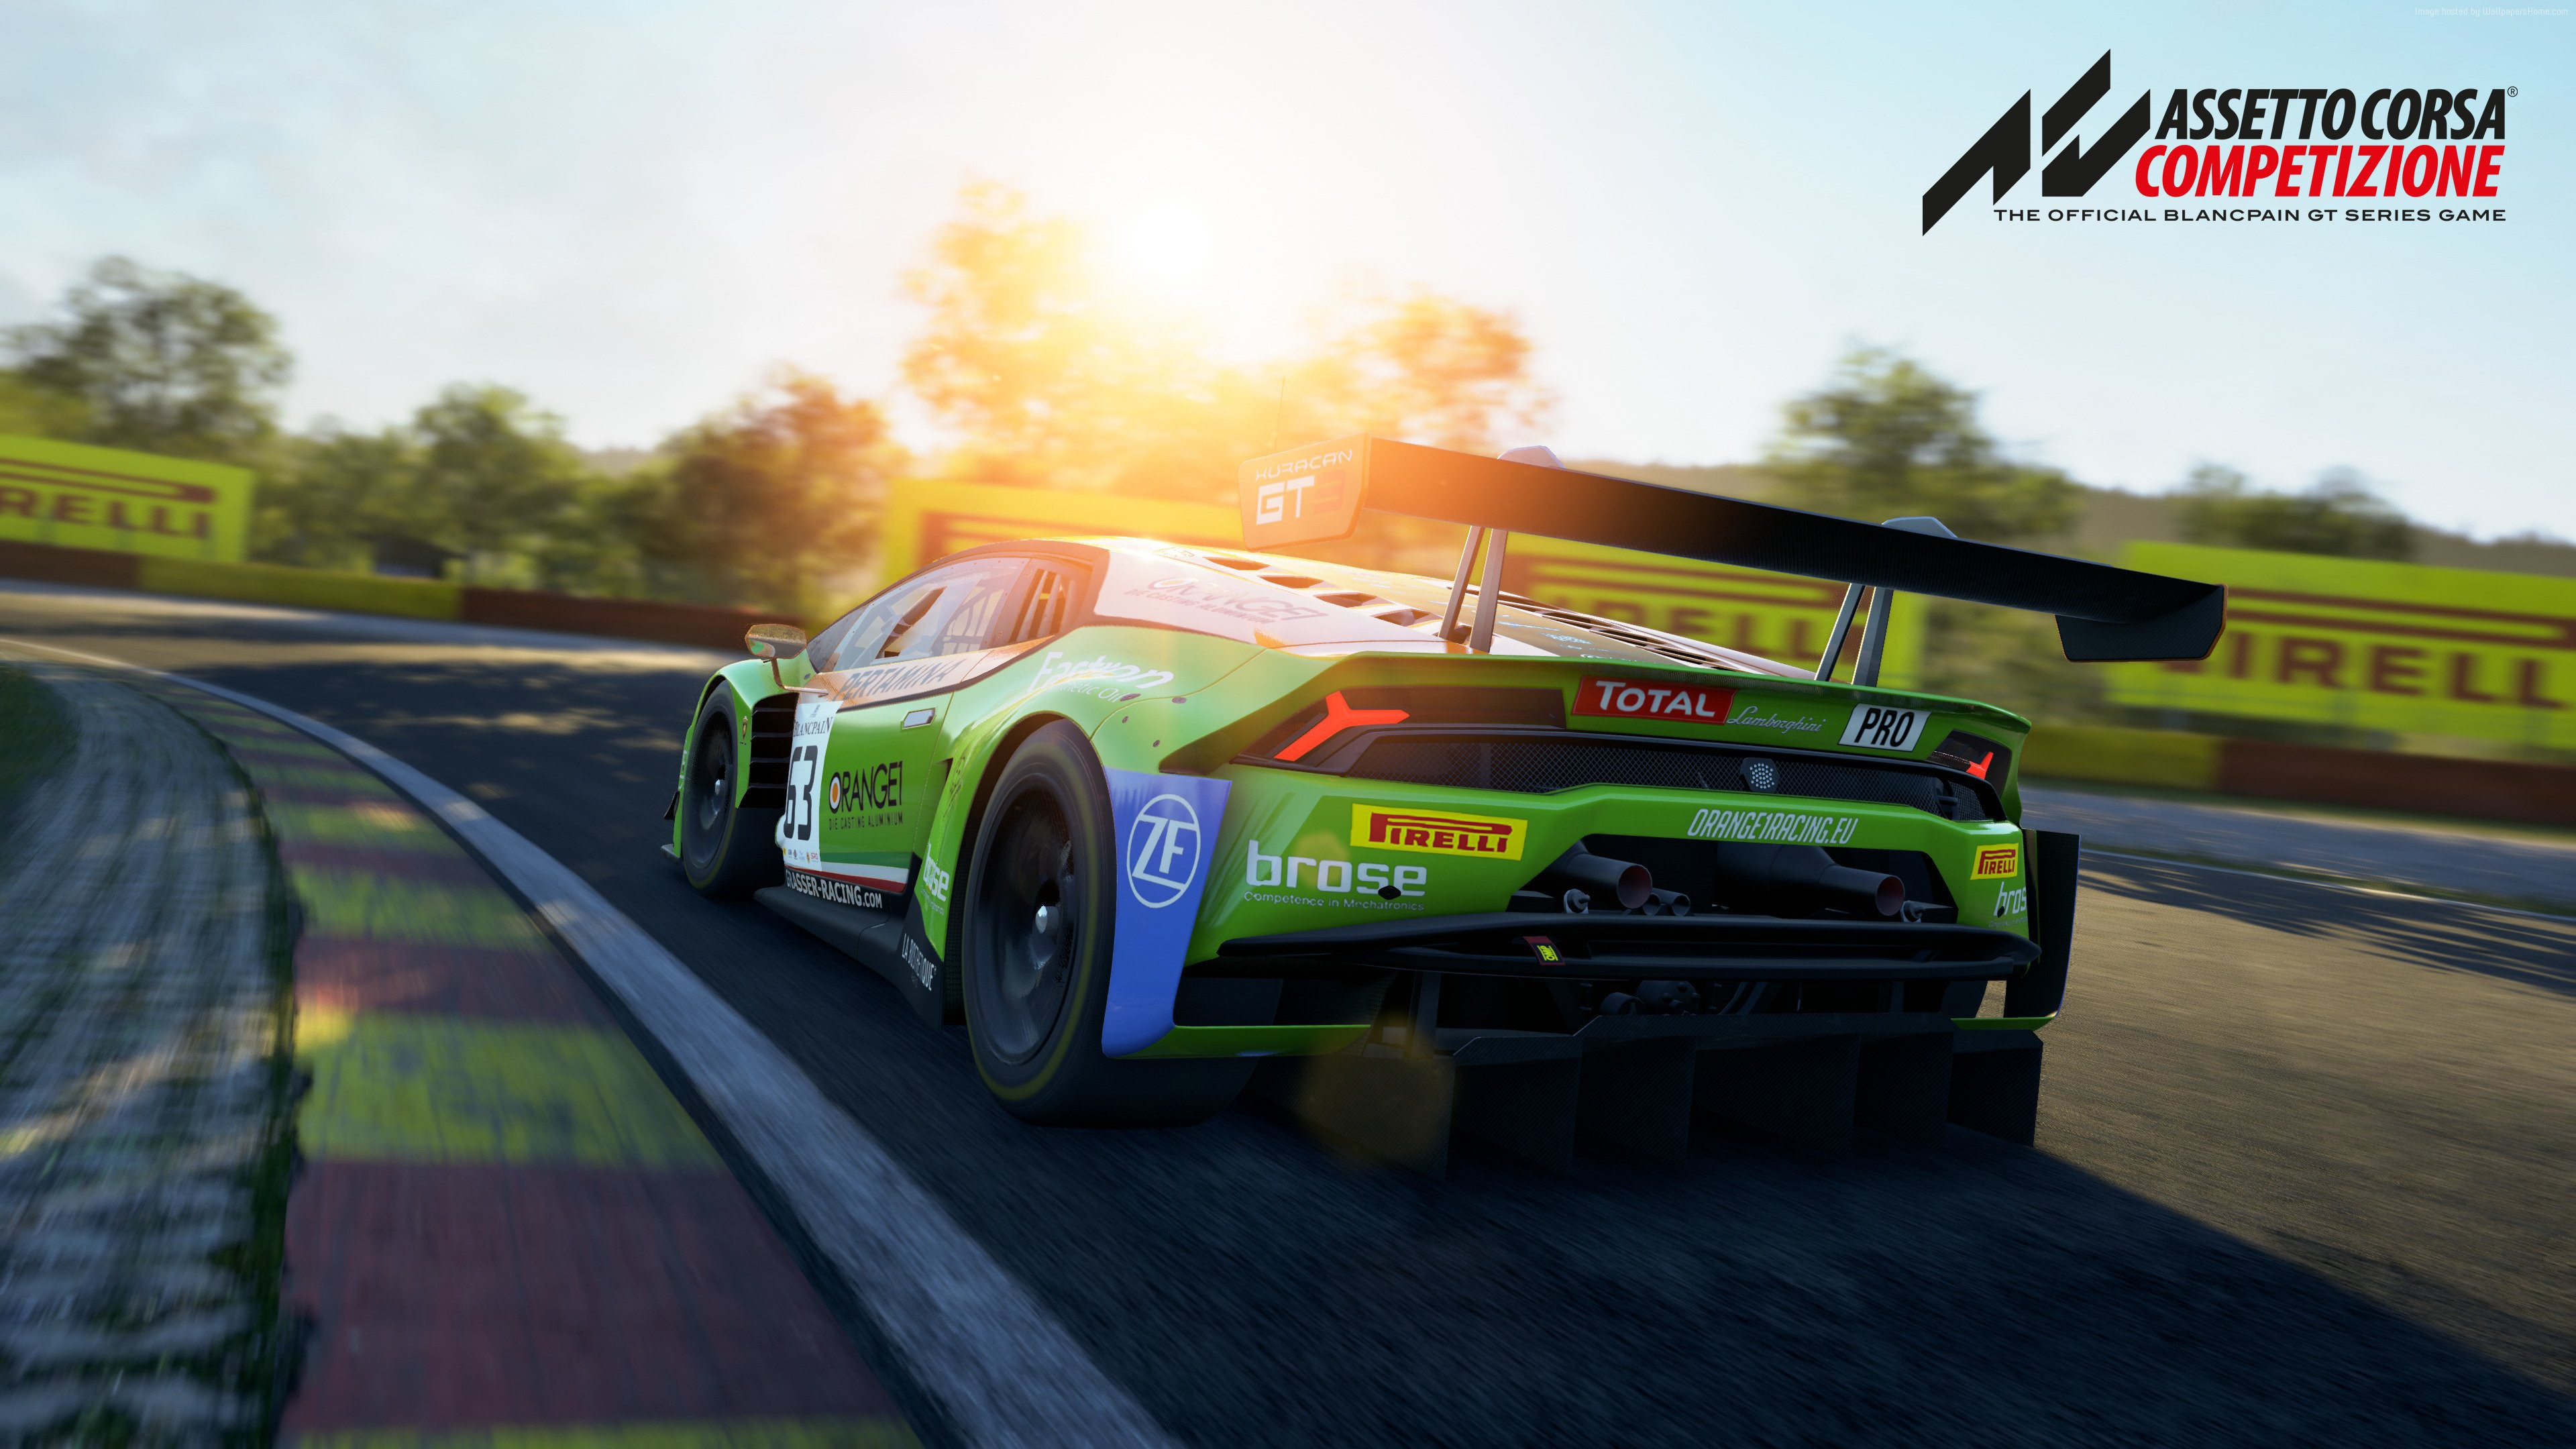 Wallpaper Assetto Corsa Competizione, screenshot, 4K, Games